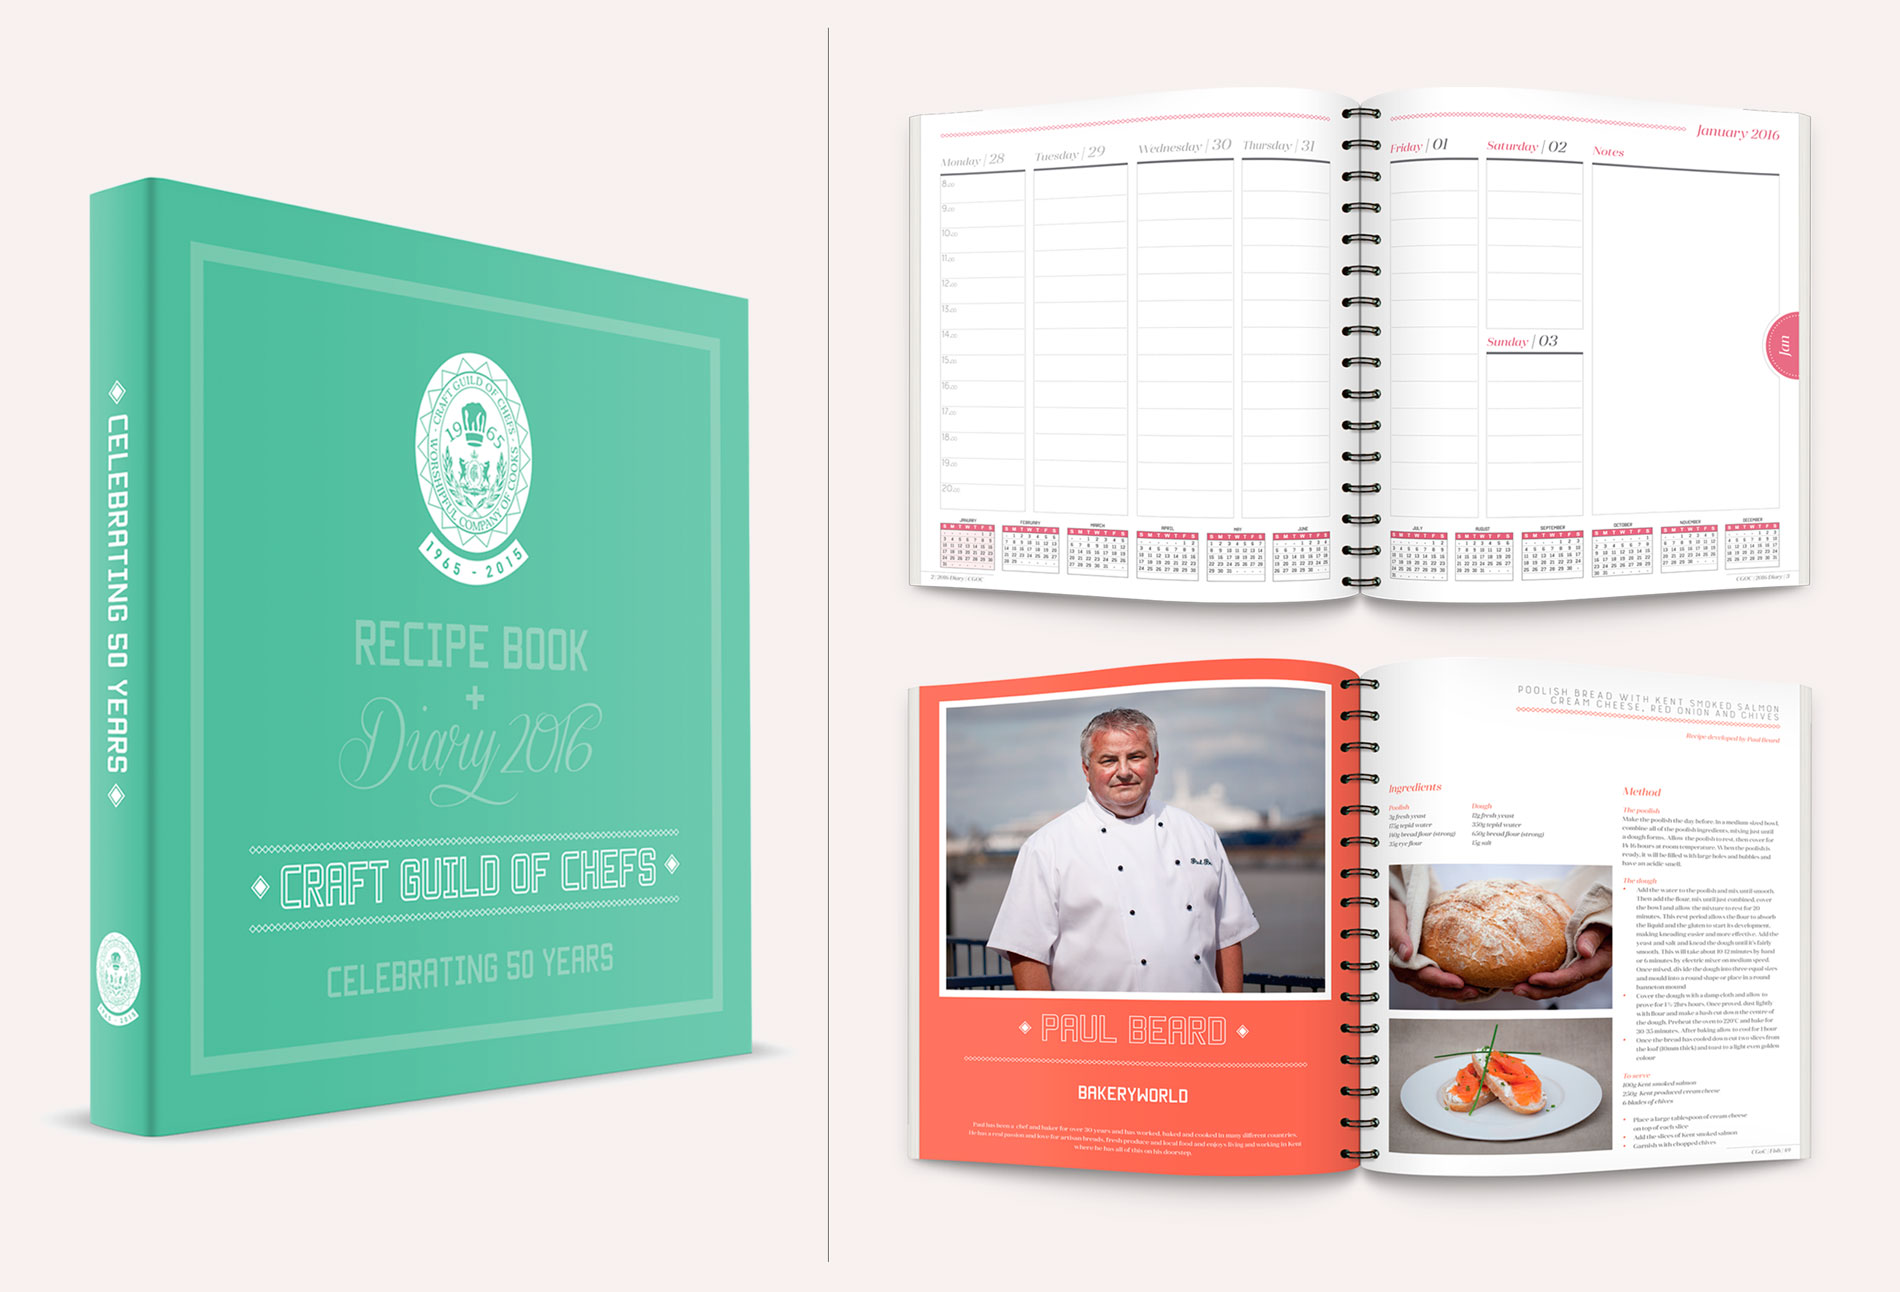 Craft Guild of Chefs Recipe book & Diary 2016